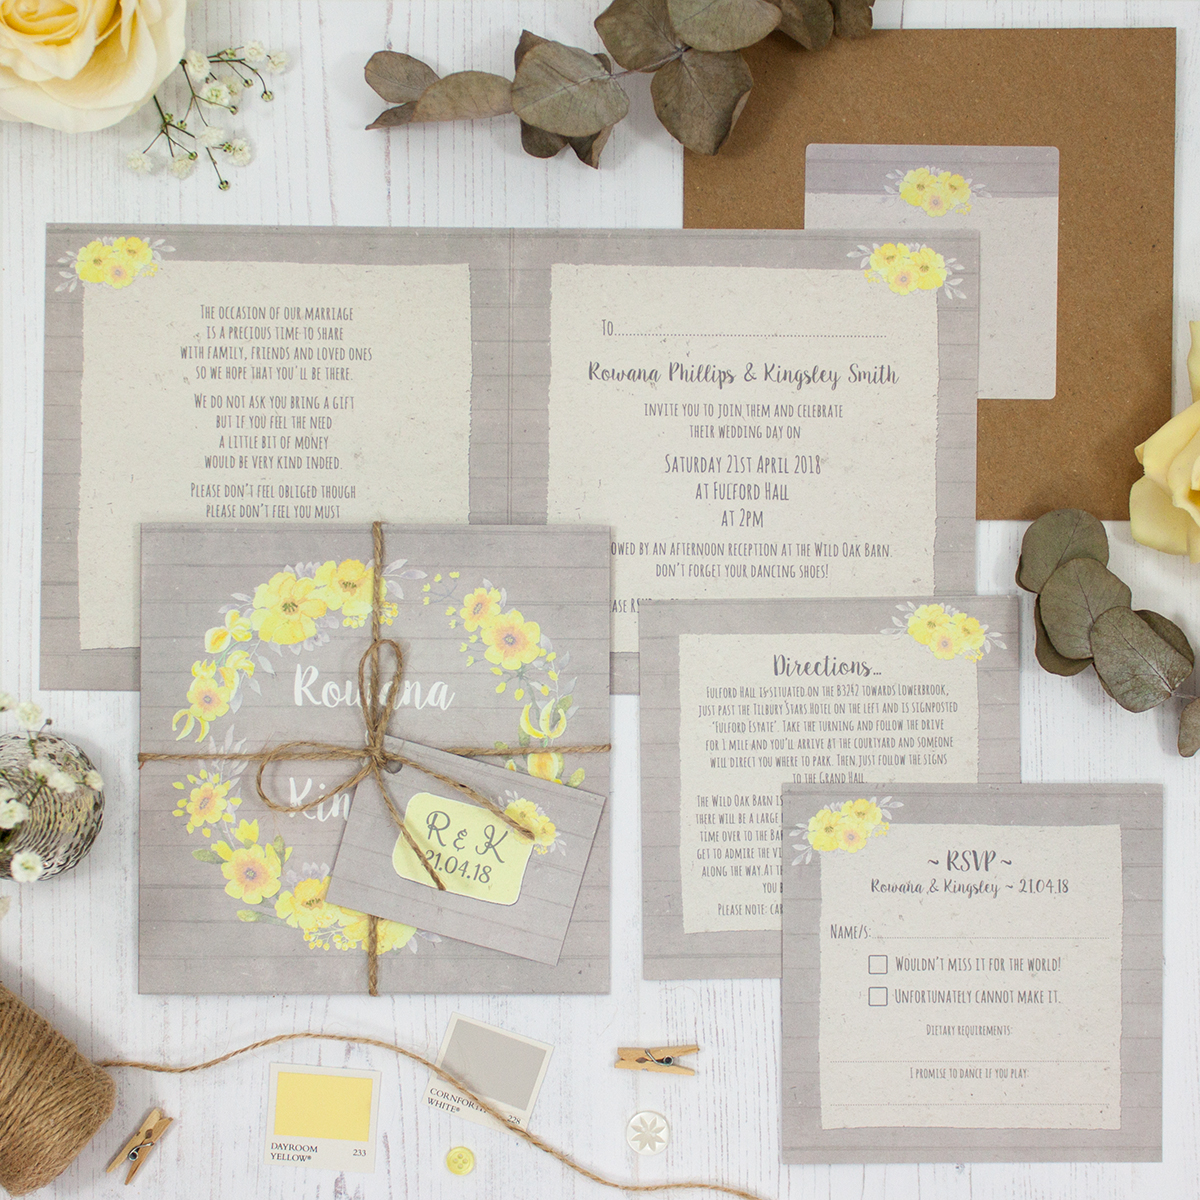 Buttercup Flutter Wedding showing invitation